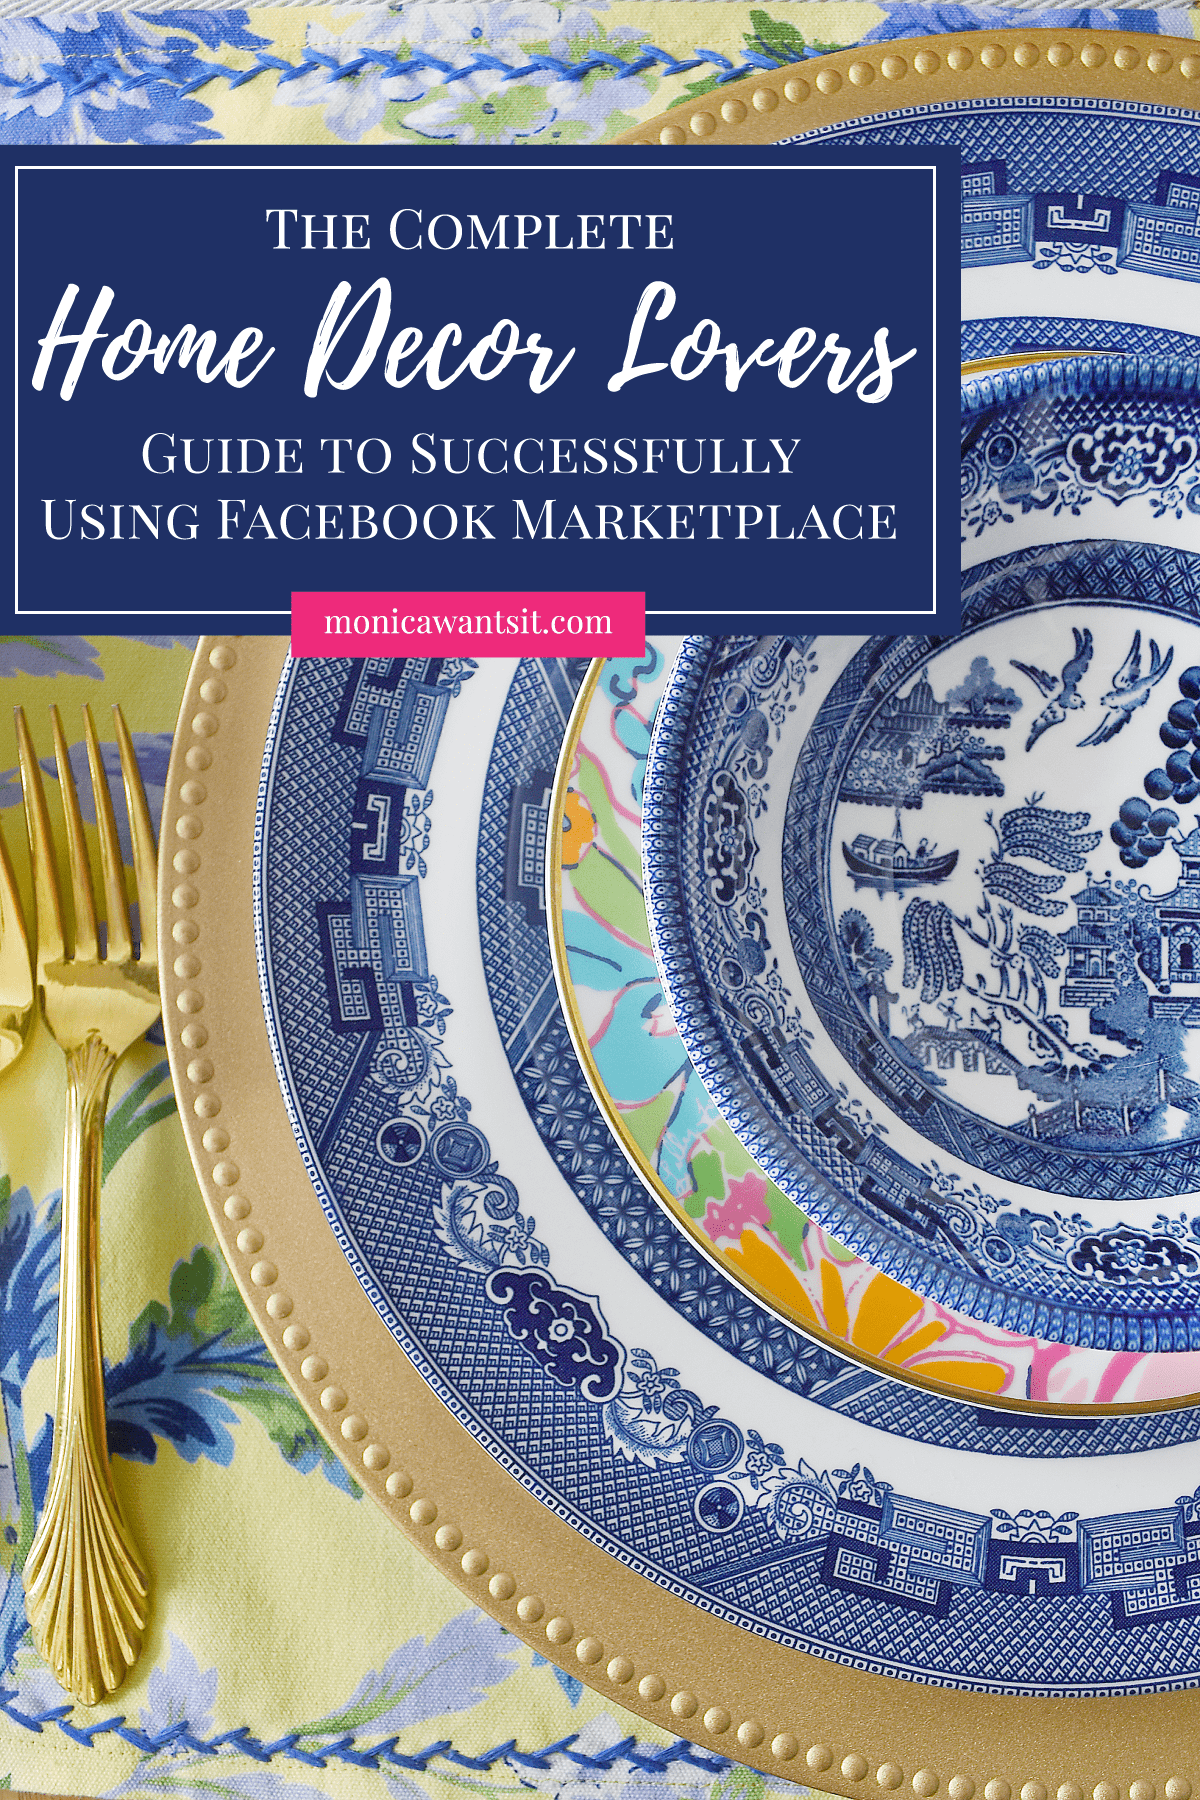 Facebook Marketplace Guide for Home Decor